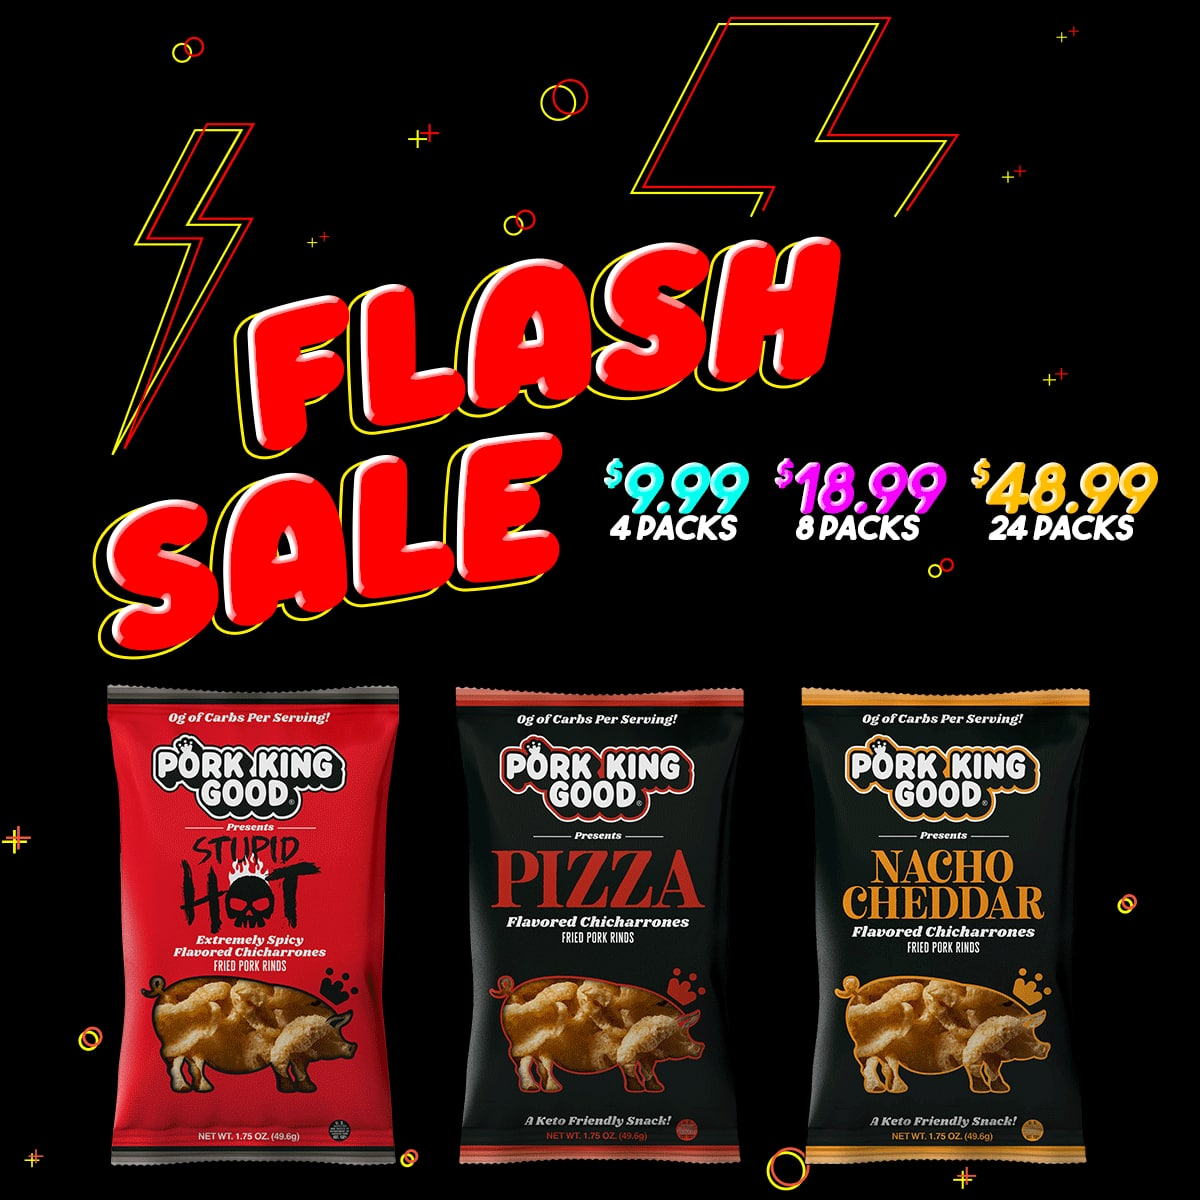 Pork King Good Flash Sale 30% Off Select Flavors Free Shipping $9.99